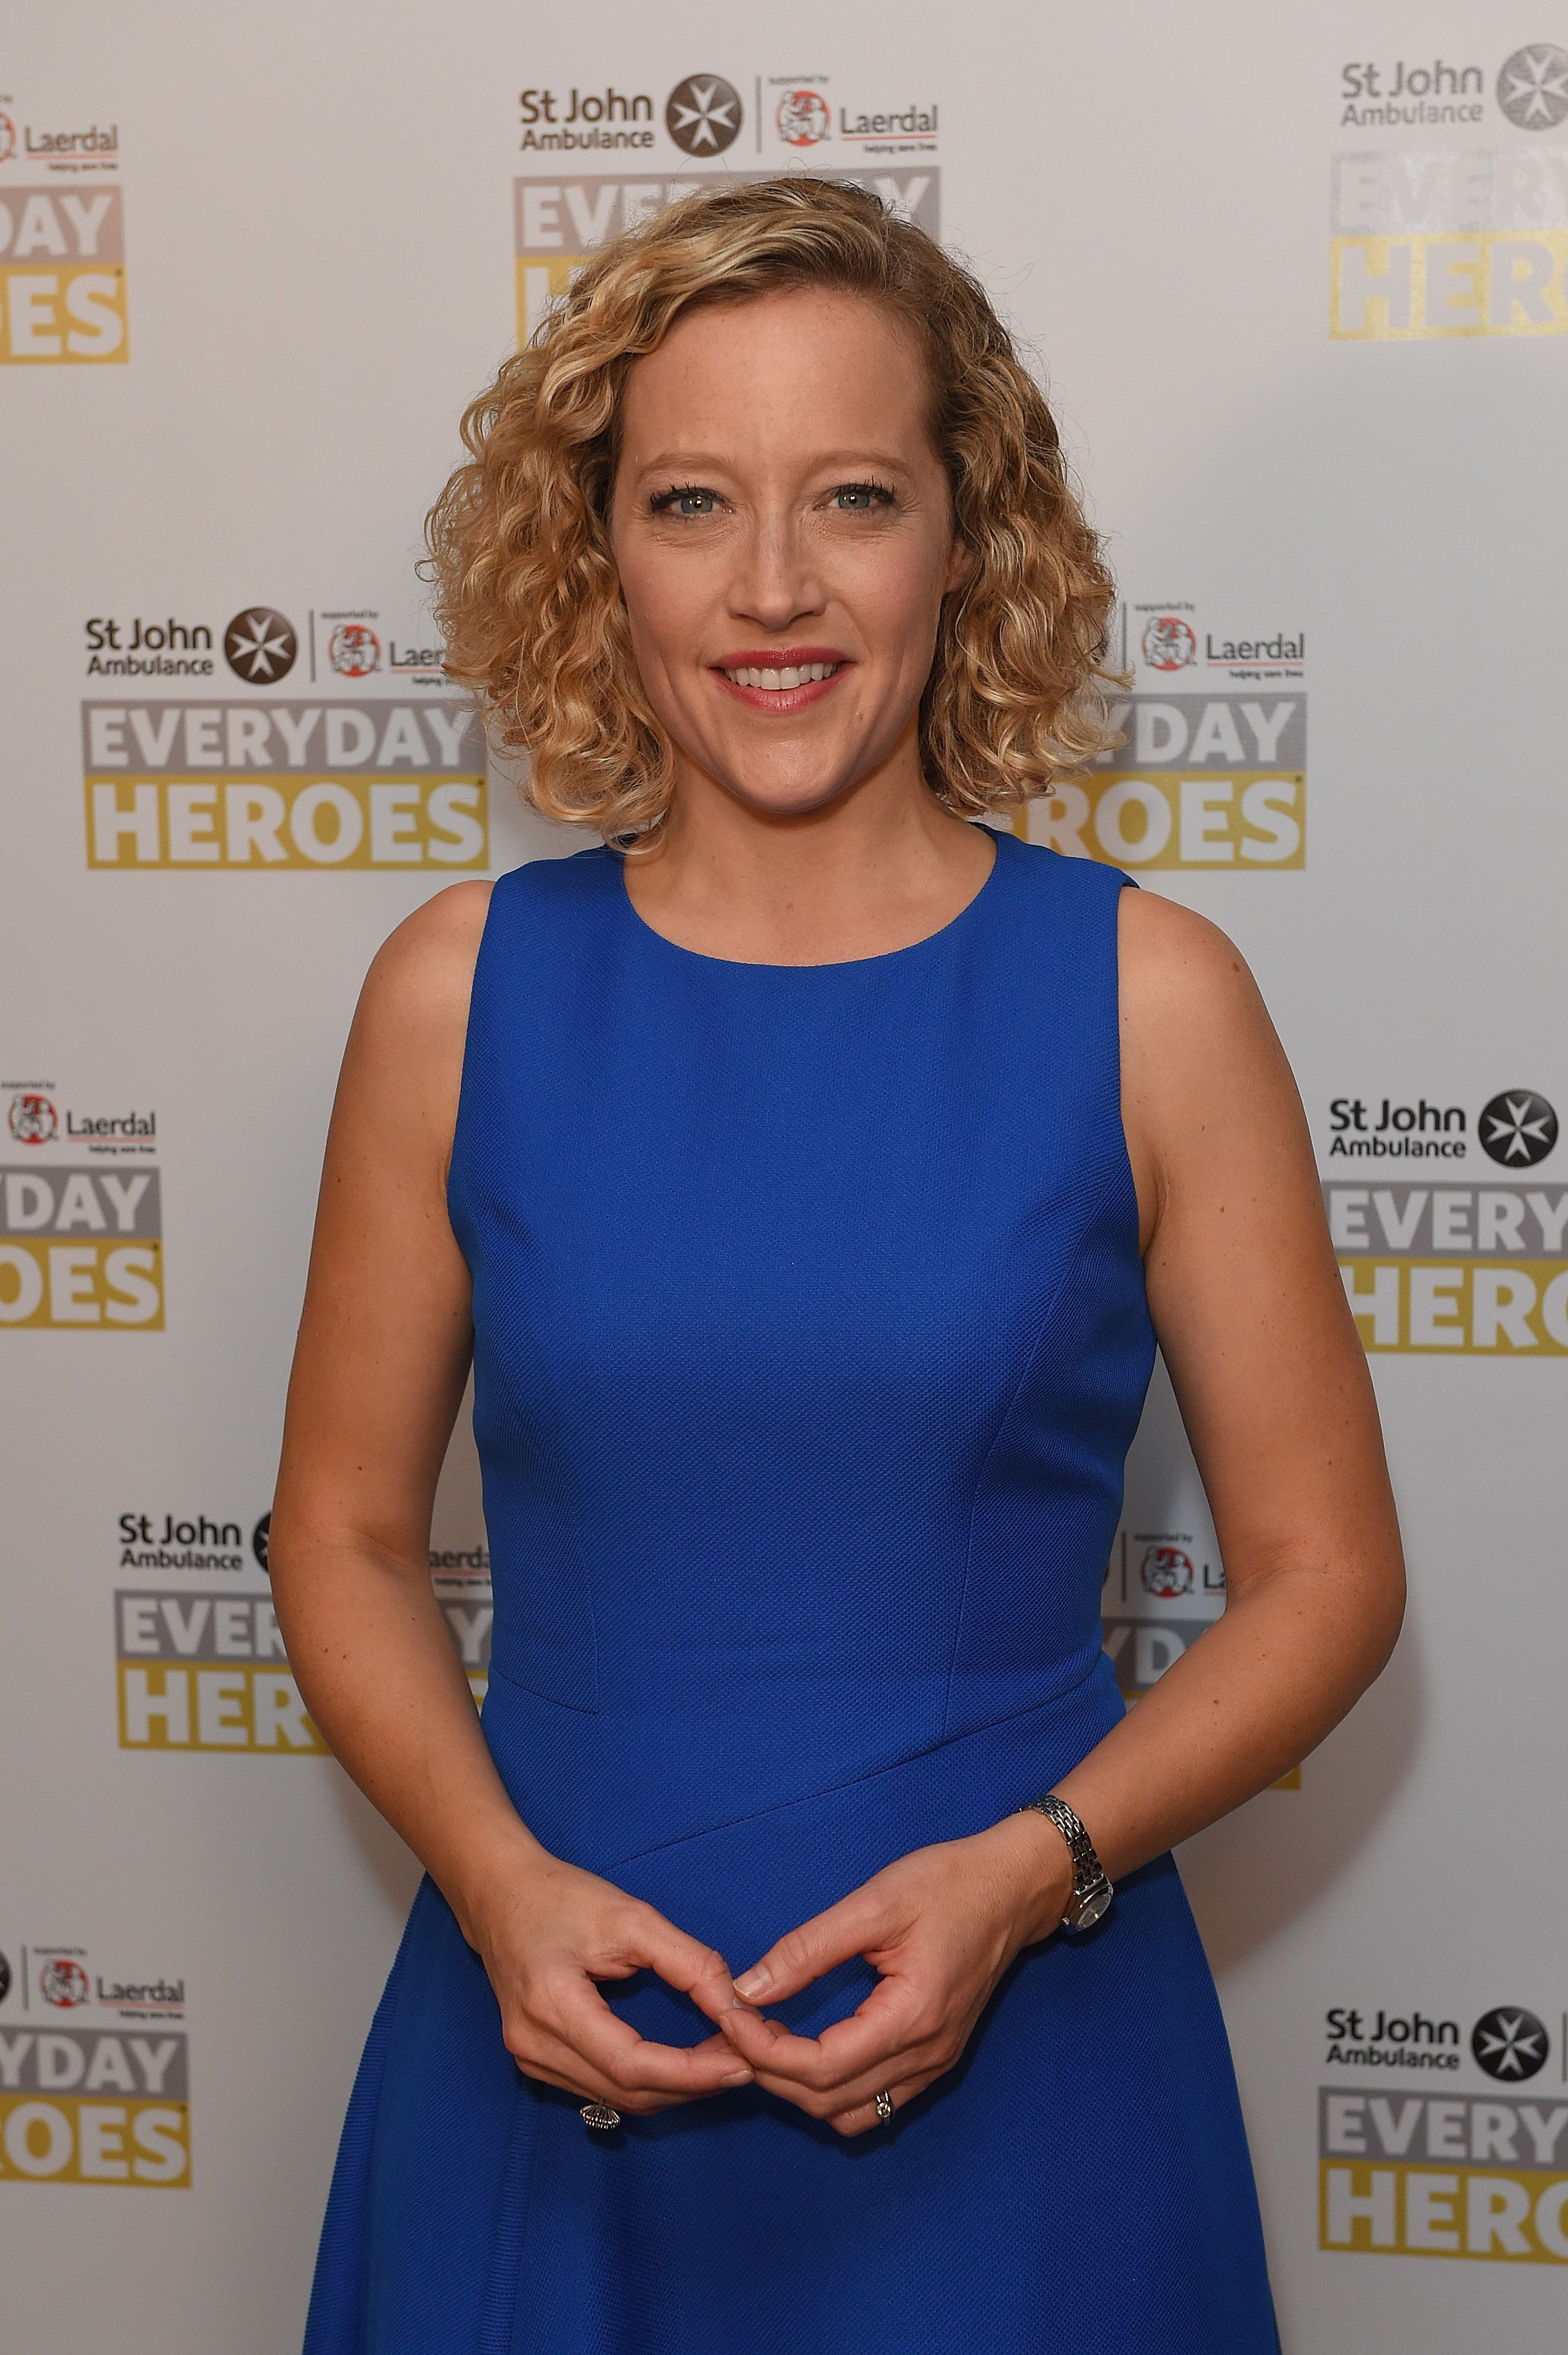 Channel 4 News Presenter Cathy Newman Slams Employer ITN After Gender Pay Gap